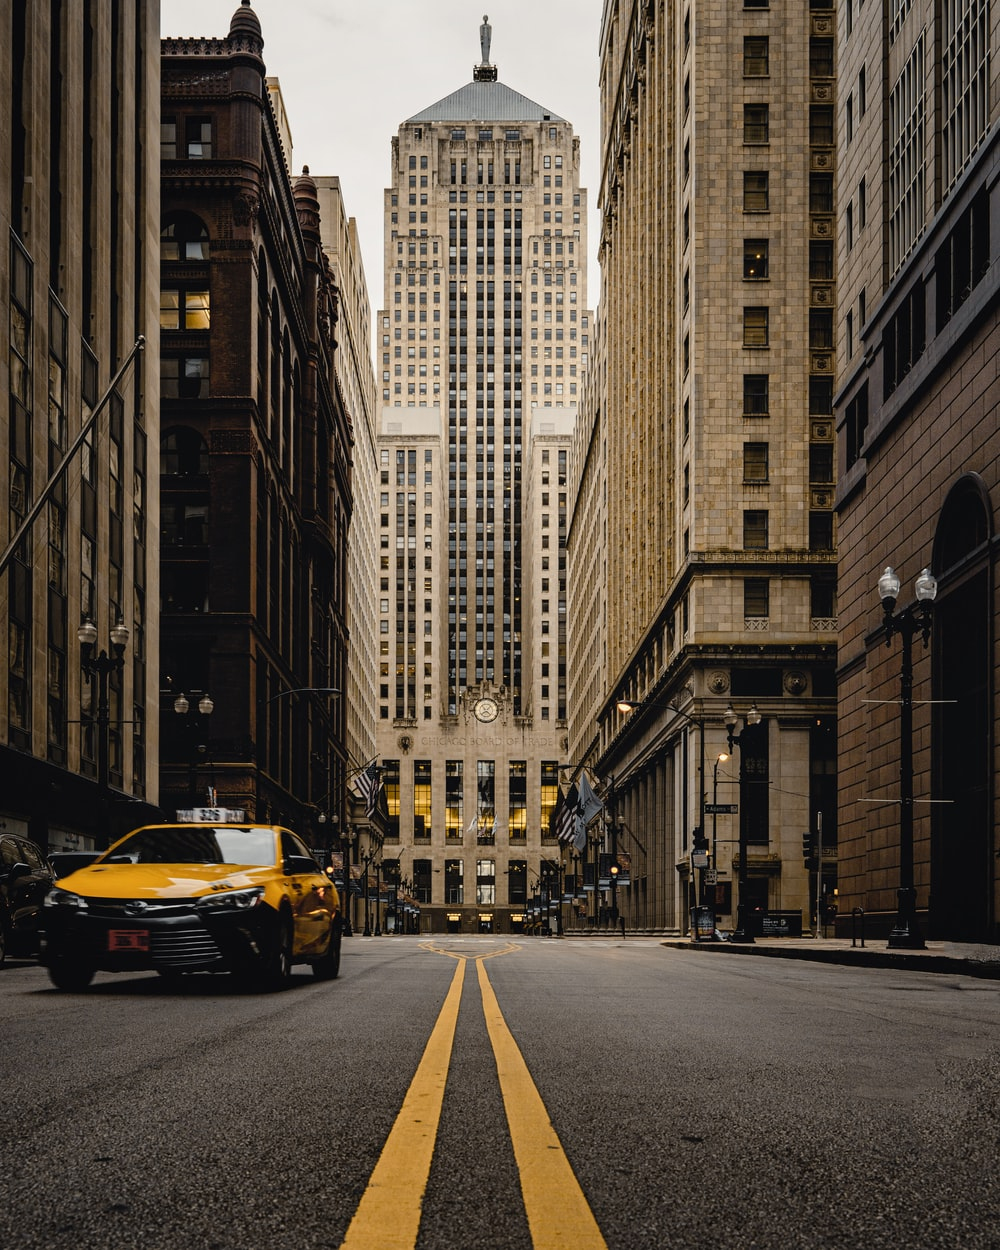 yellow car on road in between high rise buildings during daytime